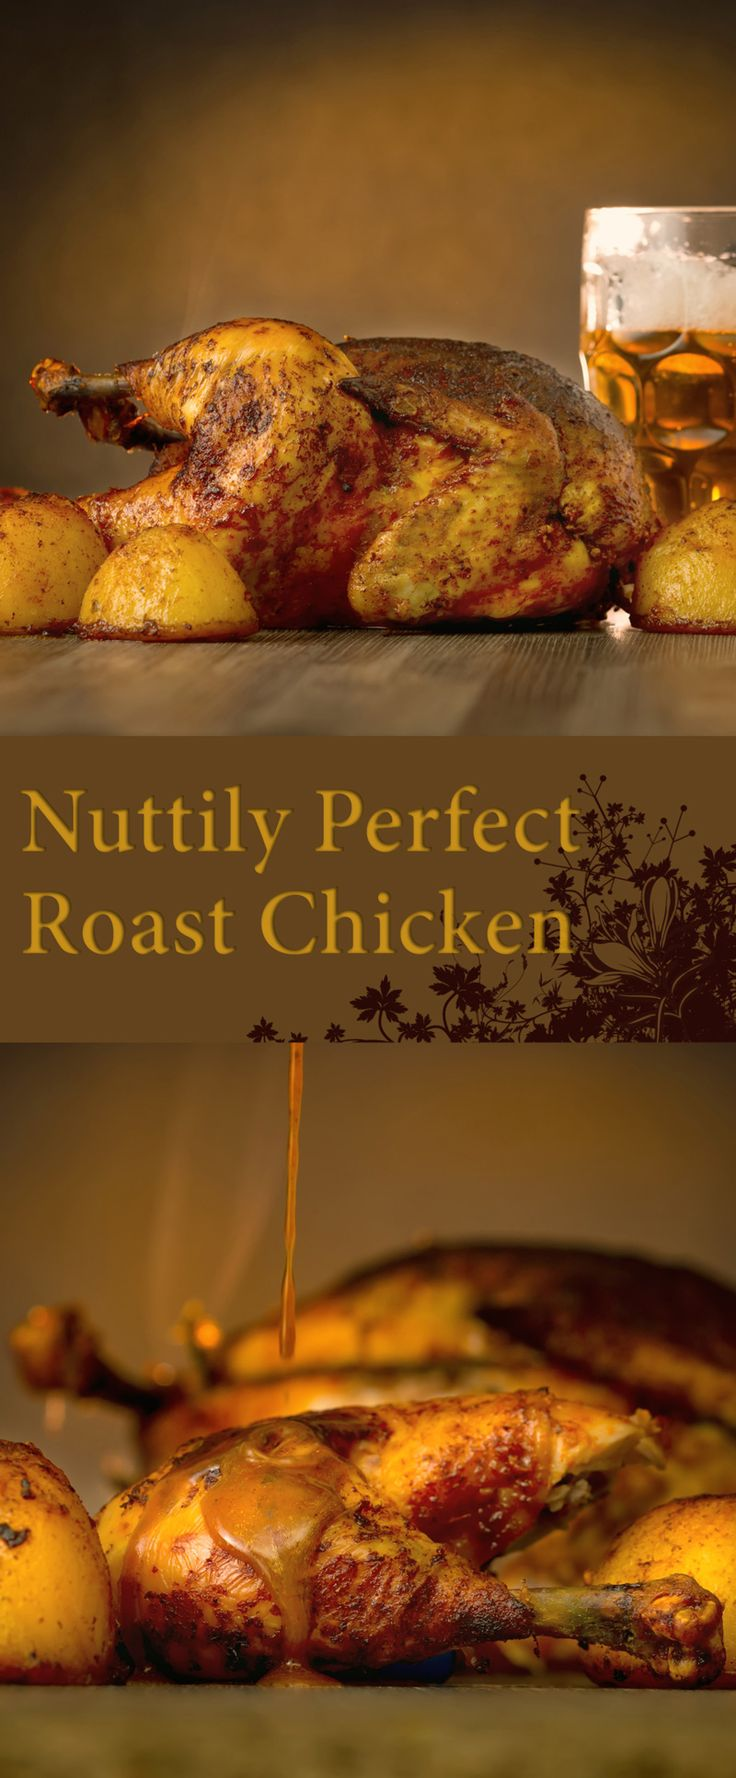 Nuttily Perfect Roast Chicken Recipe: Nuttily perfect Roast Chicken, uses a combination of peanuts, aromatic spices and a touch of paprika elevate this wee chuck to to a whole new level. #chicken #chickenrecipe #roastchicken #chickendinner #recipe #recipeoftheday #dinner #traditionalcooking